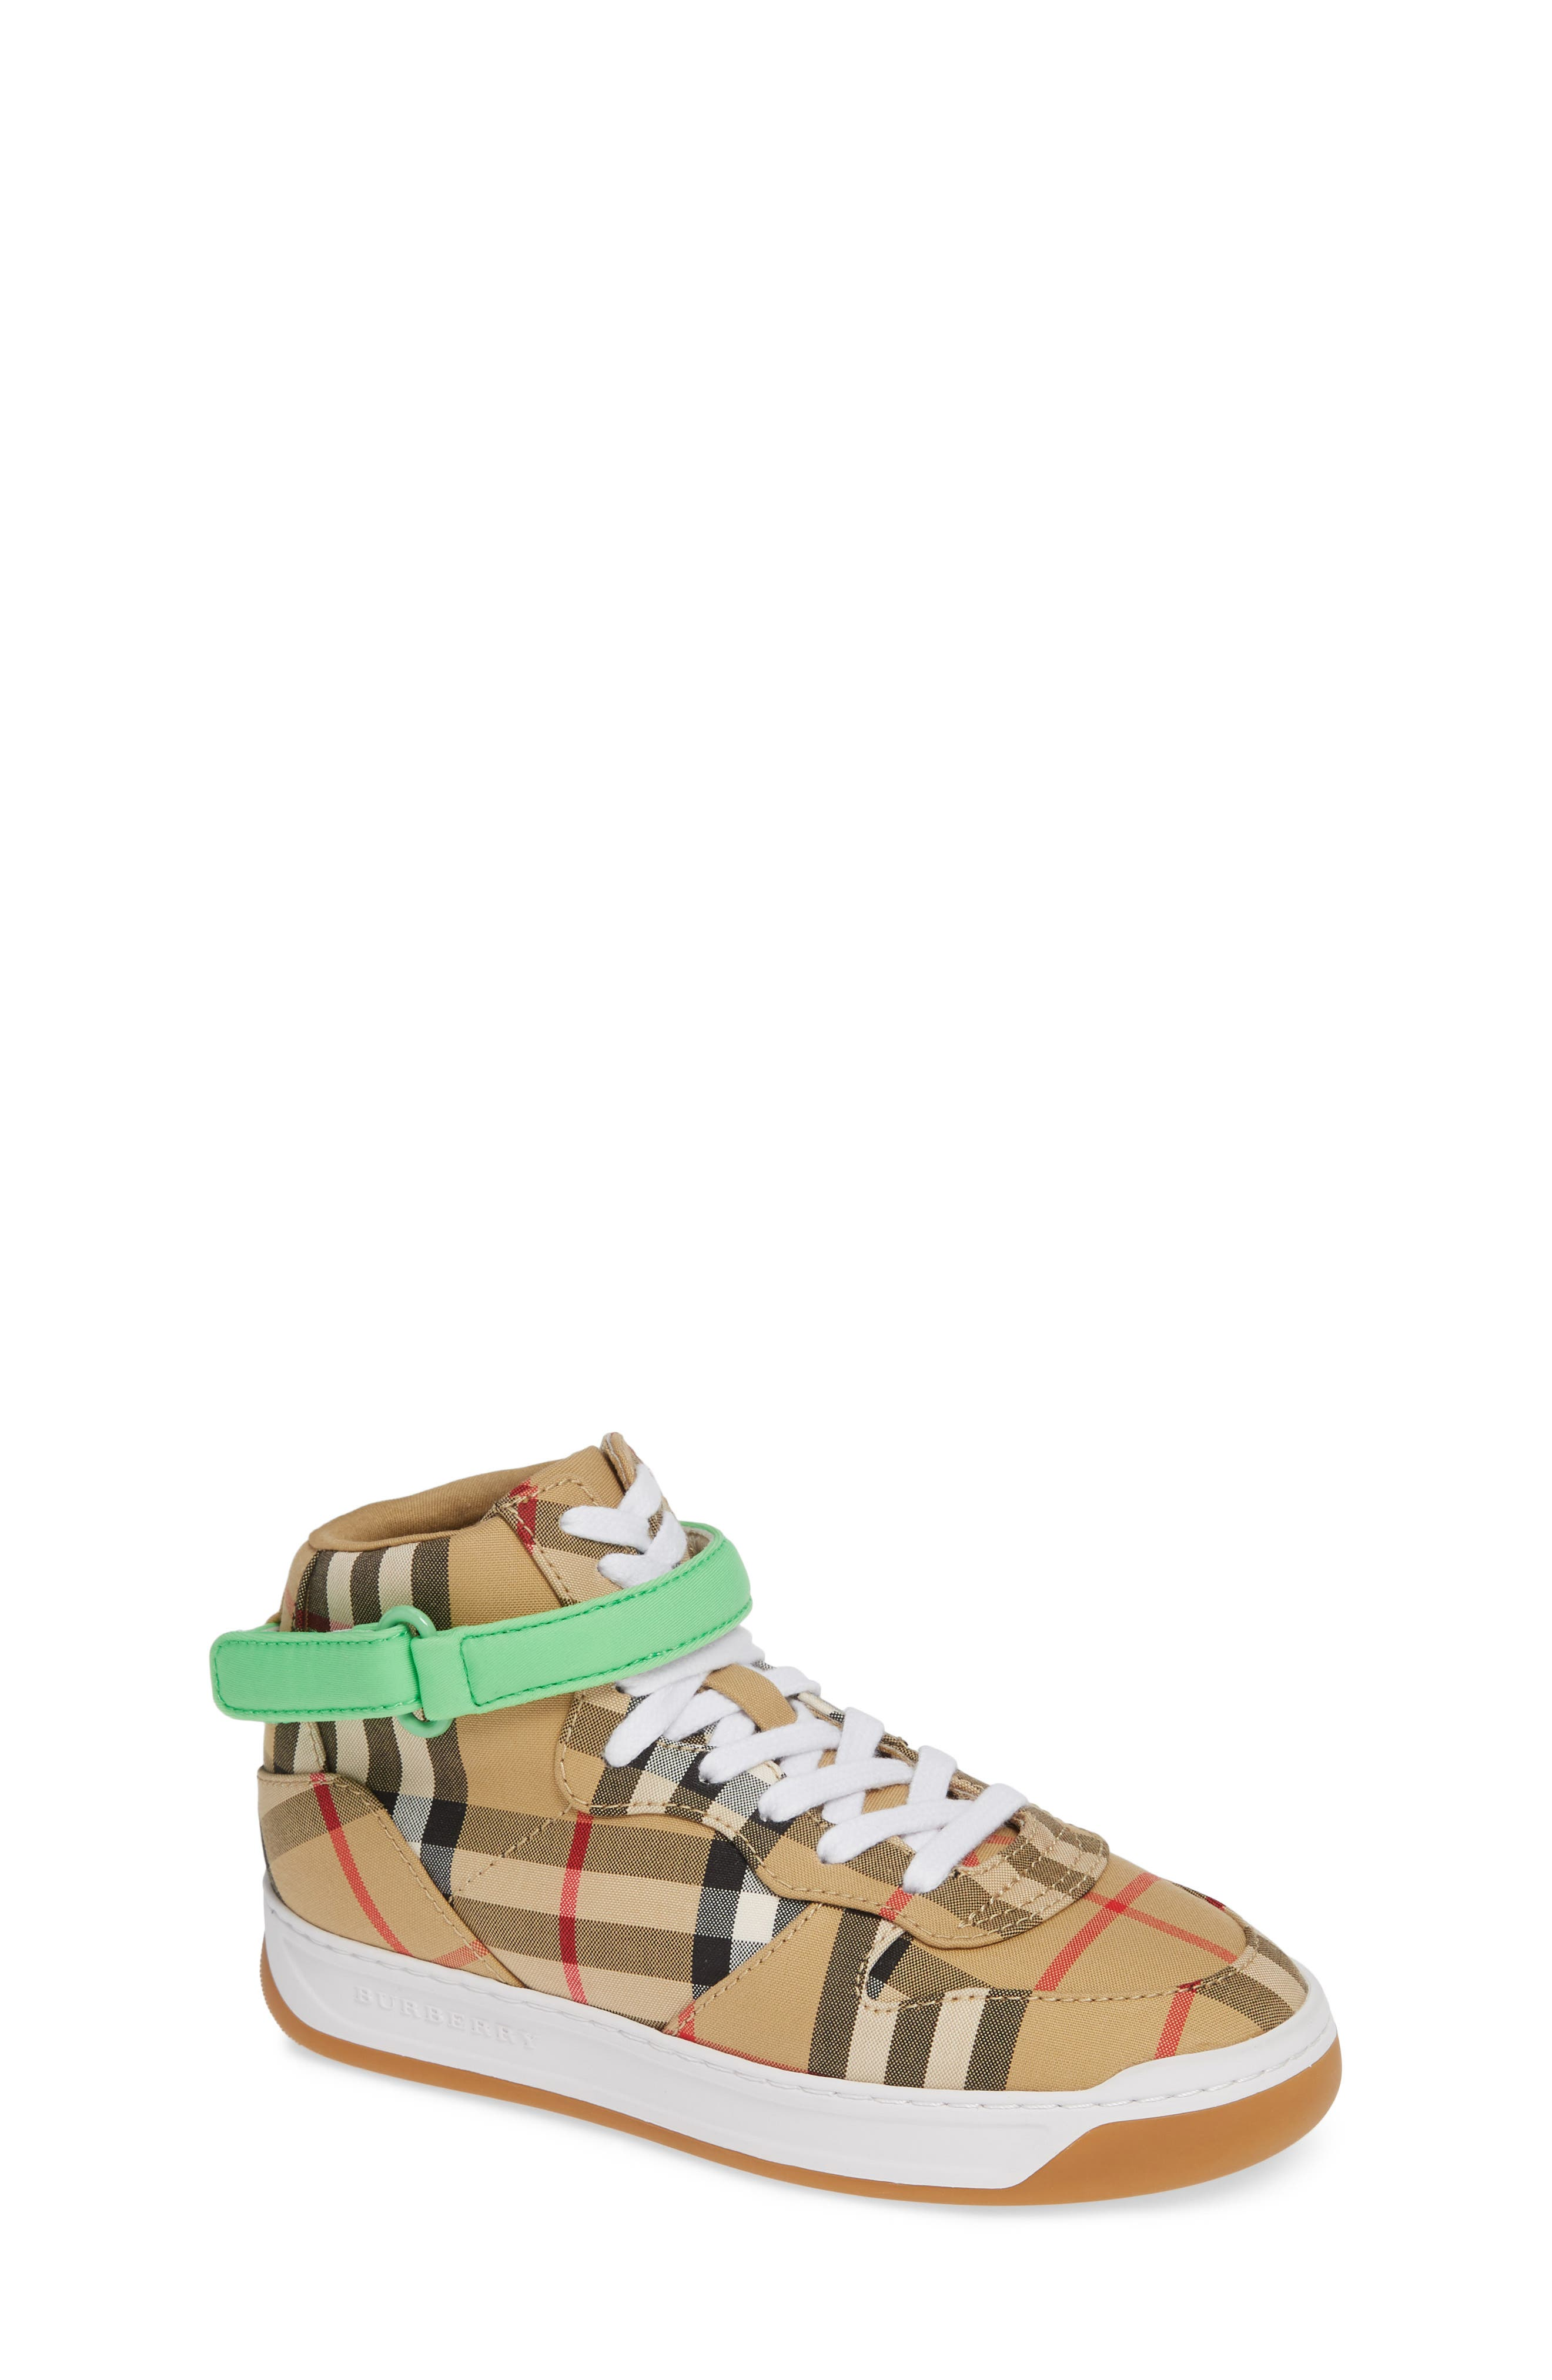 BURBERRY Groves High Top Sneaker, Main, color, NEON GREEN